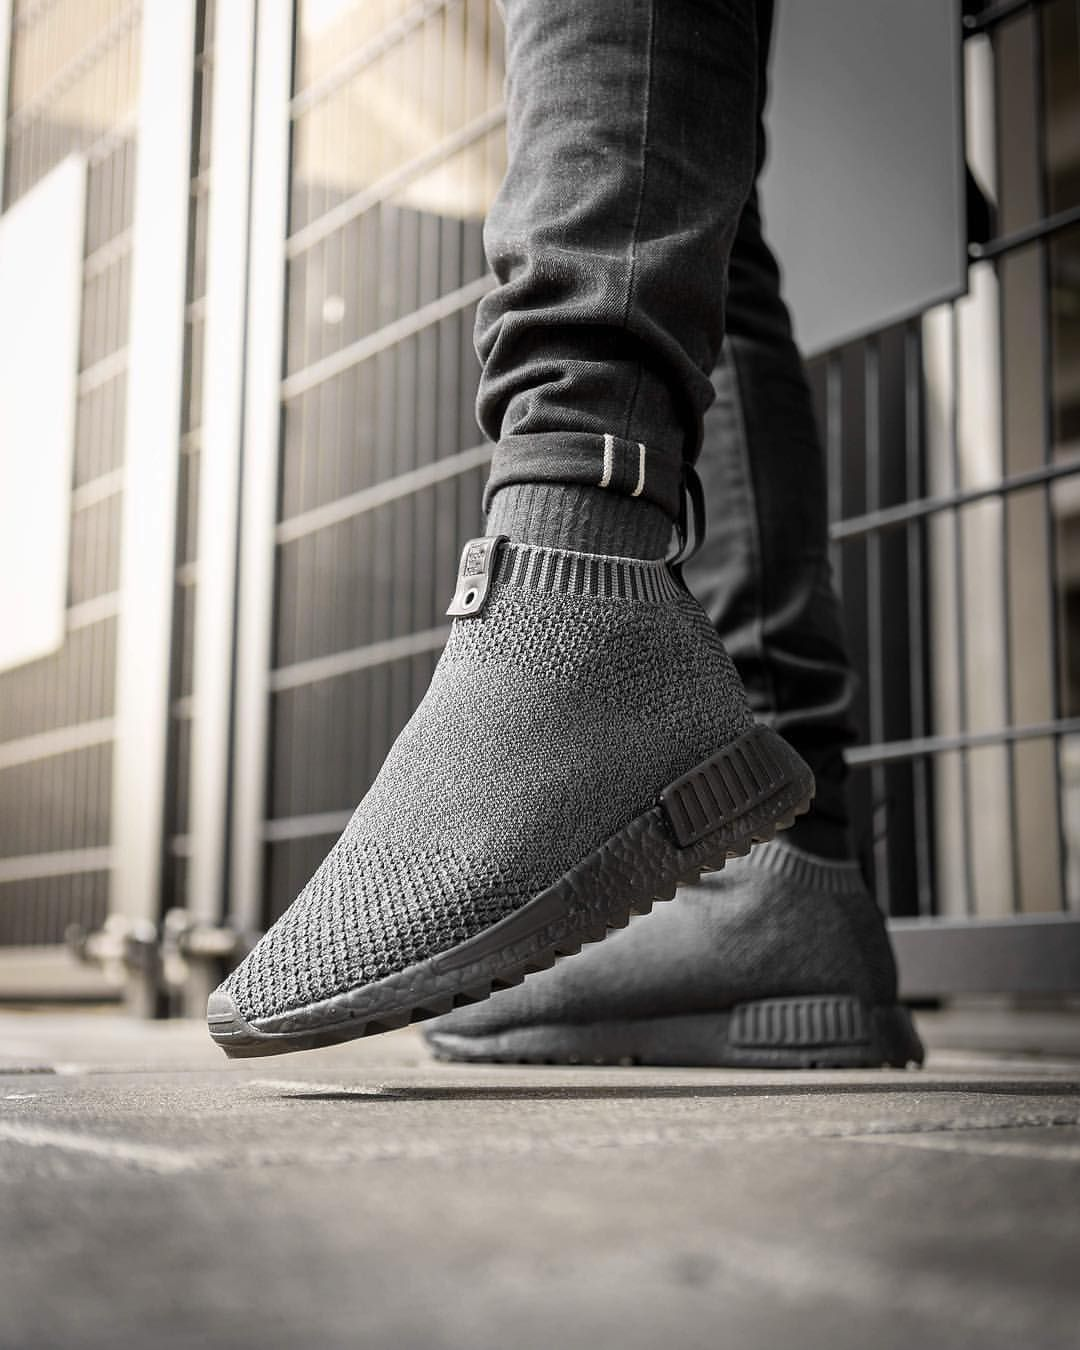 Adidas Nmd Cs1 The Good Will Out,Adidas Consortium X The